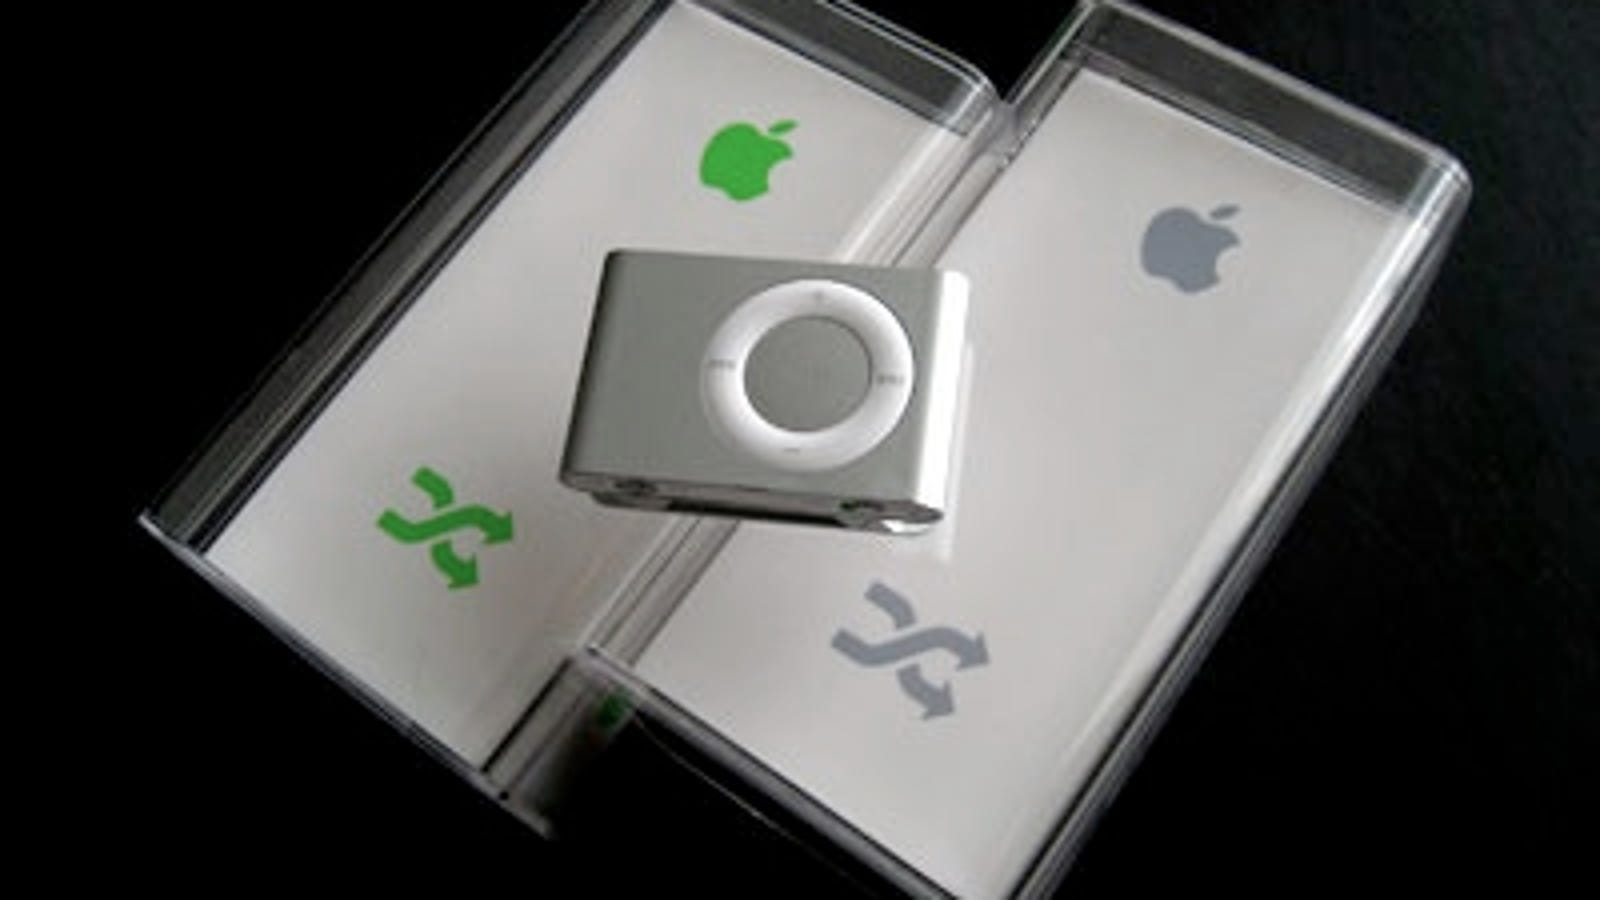 earbuds storage bag - Get the Latest iPod shuffle Earbuds: Telling the Old Box vs. the New